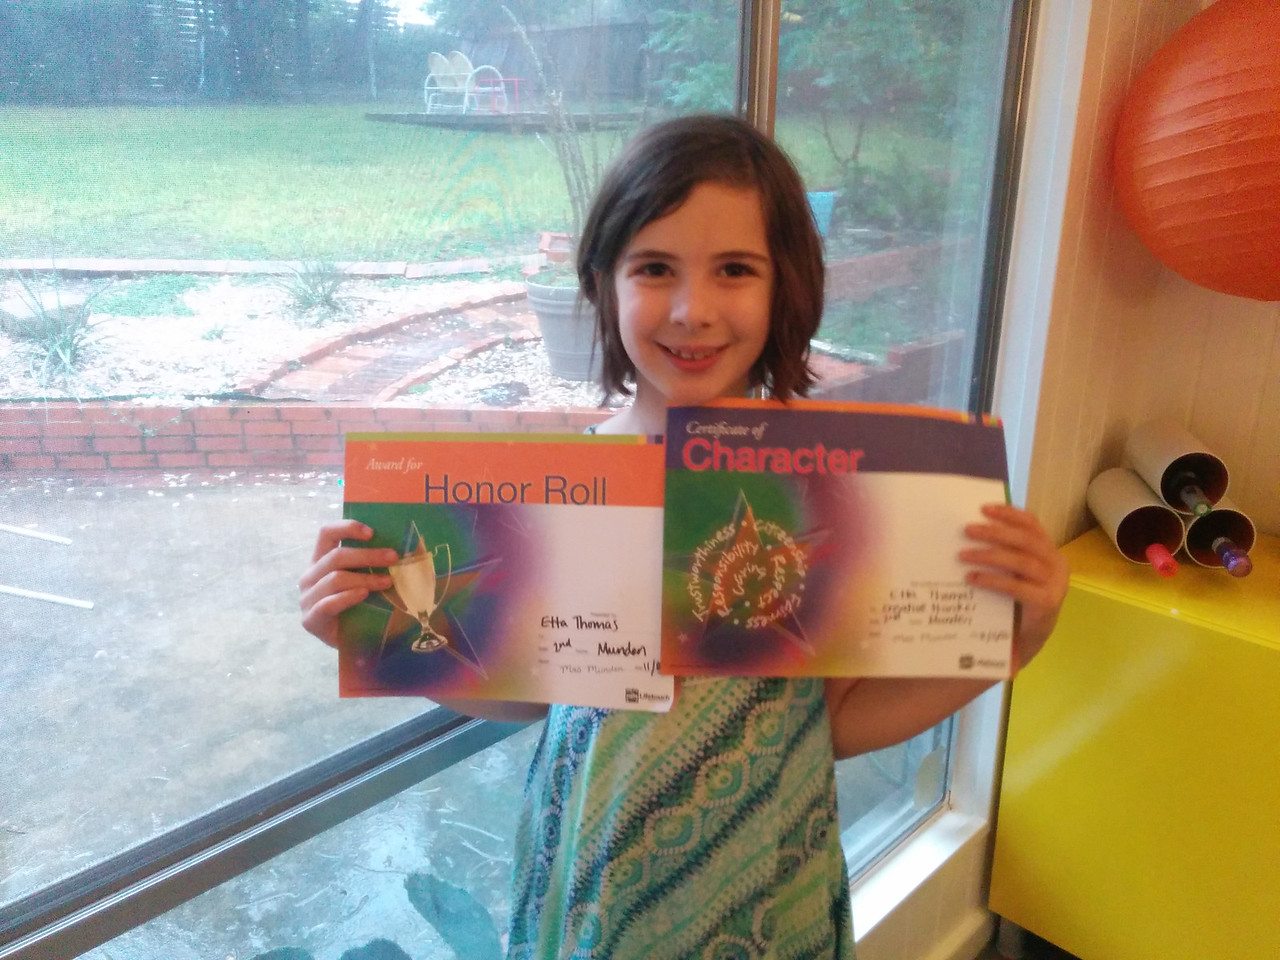 Etta got an Honor Roll and Creative Thinker Awards